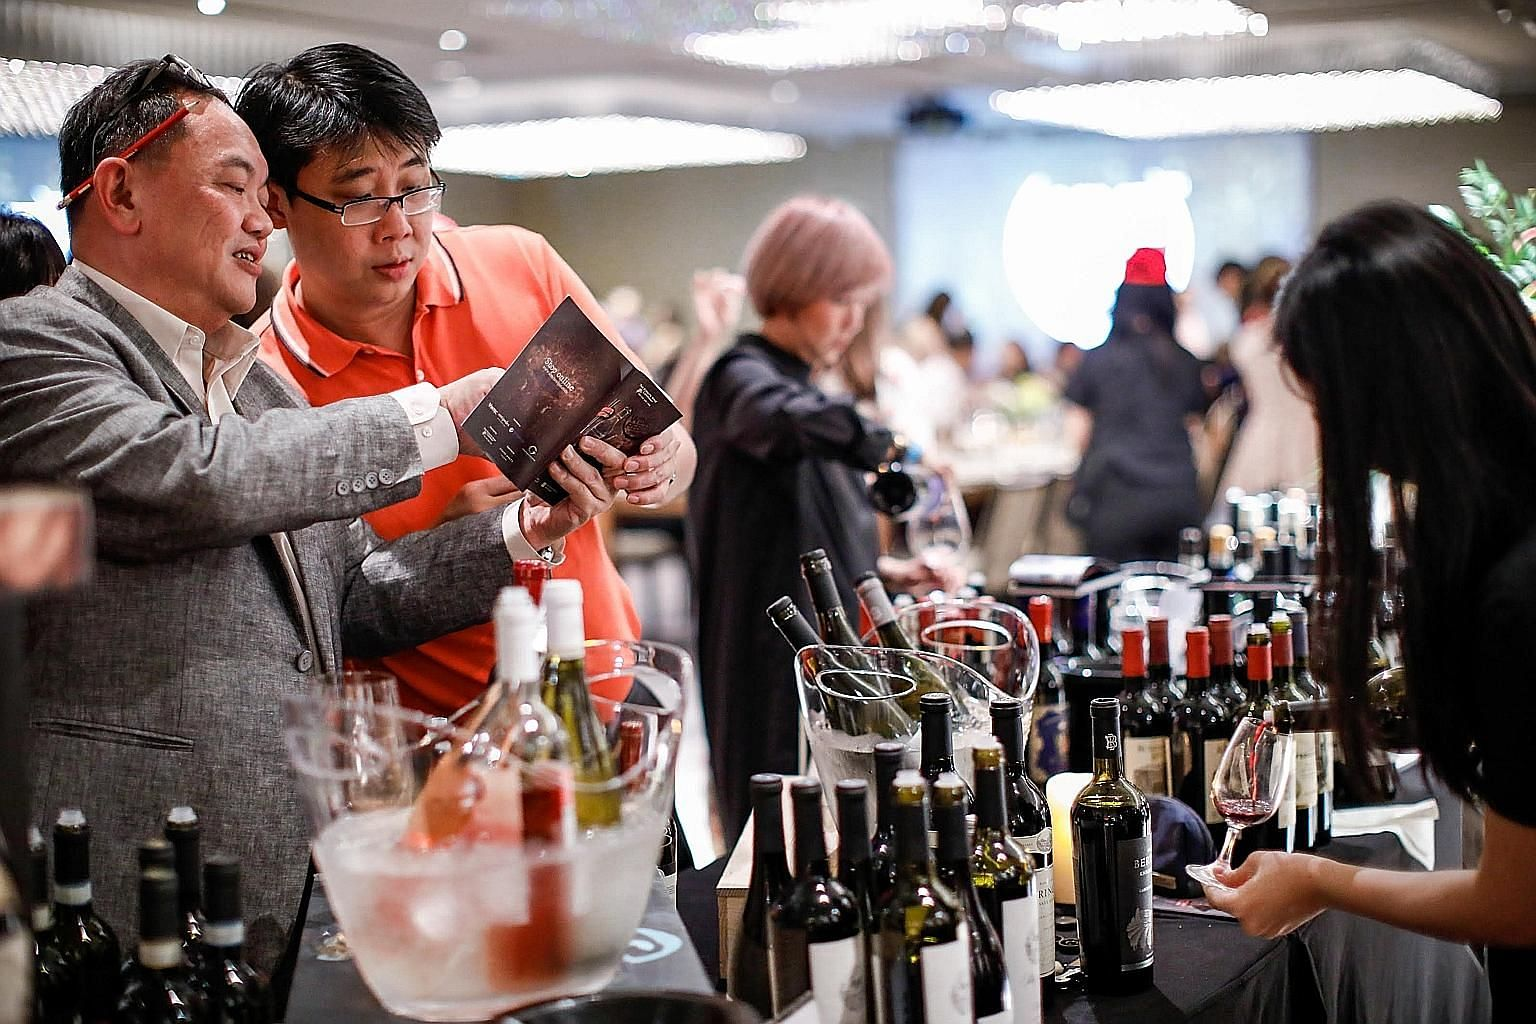 SPH Rewards and The Straits Wine Company are presenting a special event on Jan 11 to introduce to you a taste of Italy with Luca Ardiri, the export manager for wine labels Felluga, Pala, Speri & Braida.